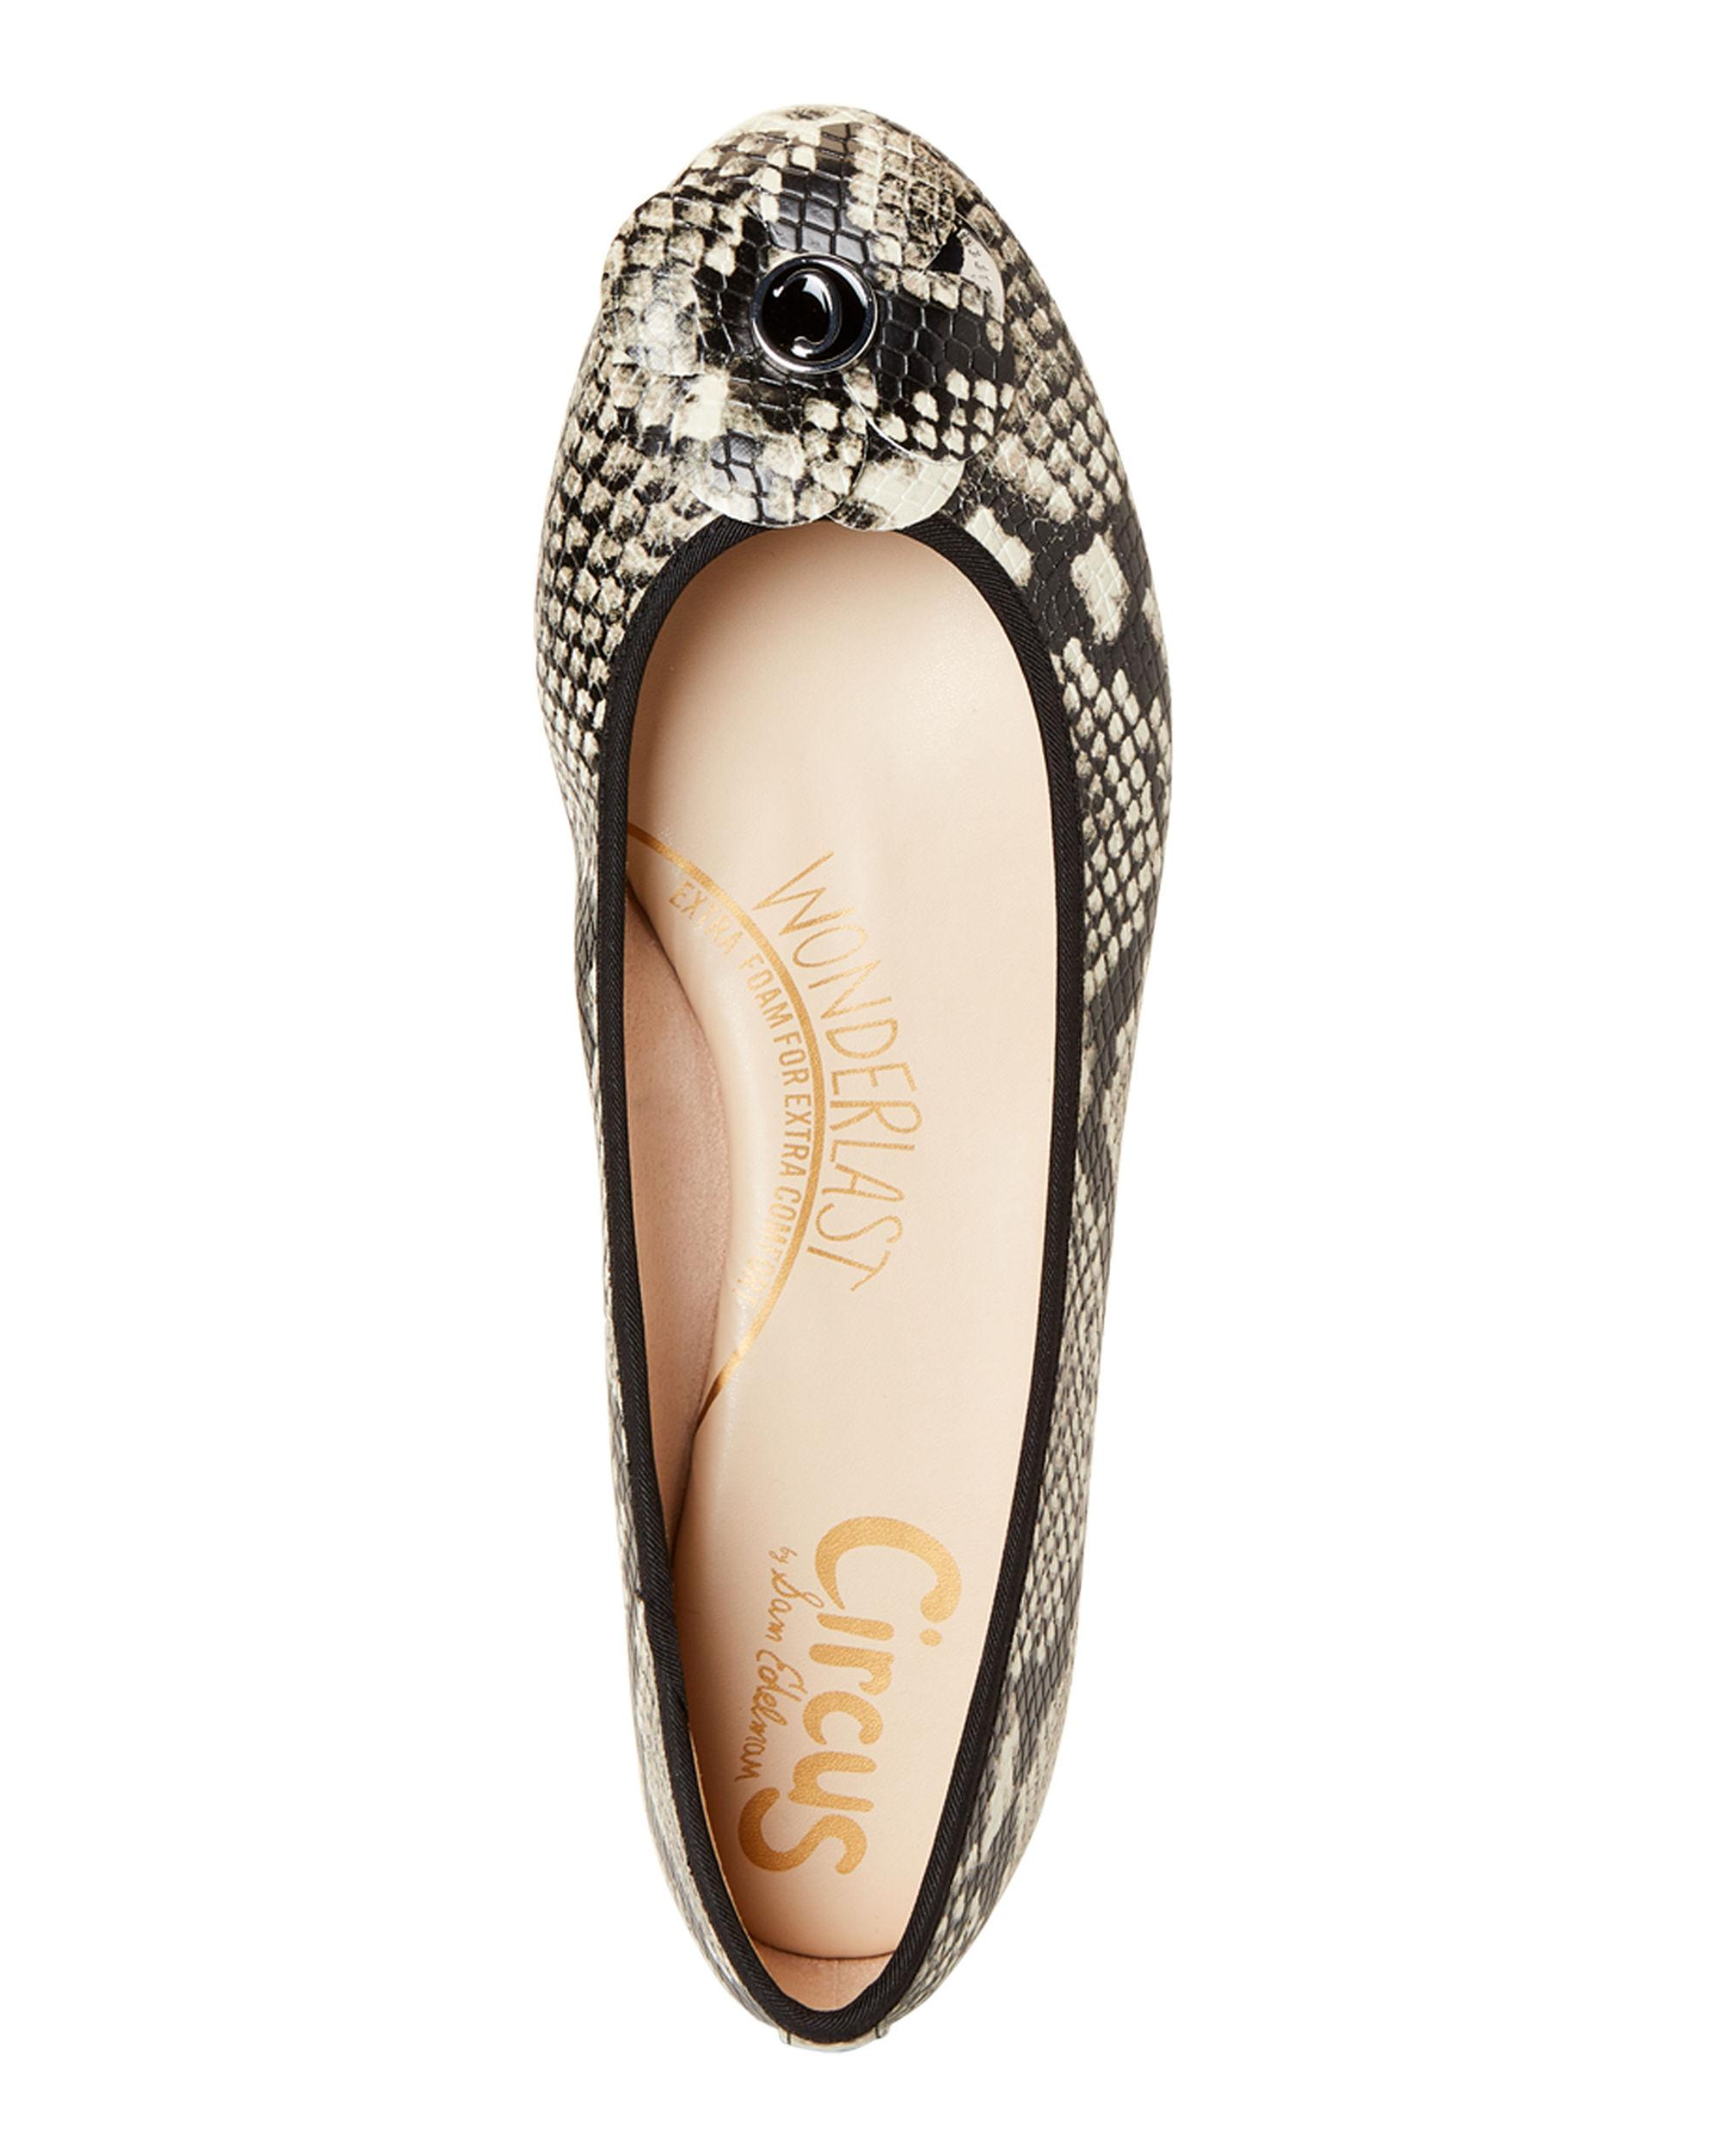 6a954d13f68969 Circus by Sam Edelman Cashmere Cecilia Snakeskin-effect Floral Flats ...